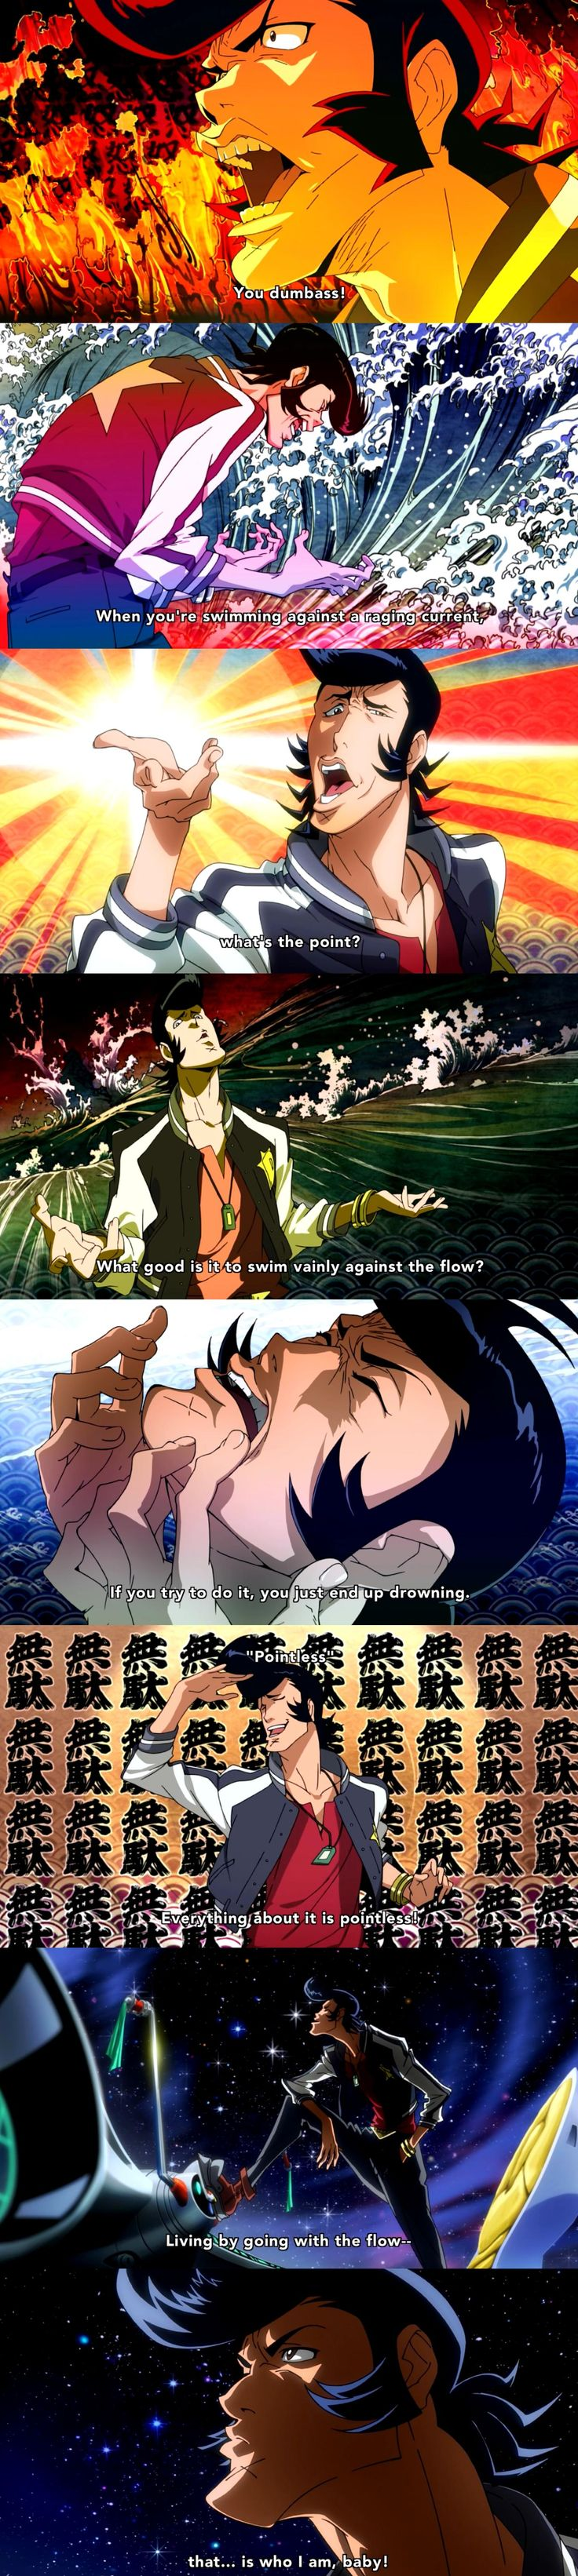 I've been anticipating this anime for months. (Space Dandy)